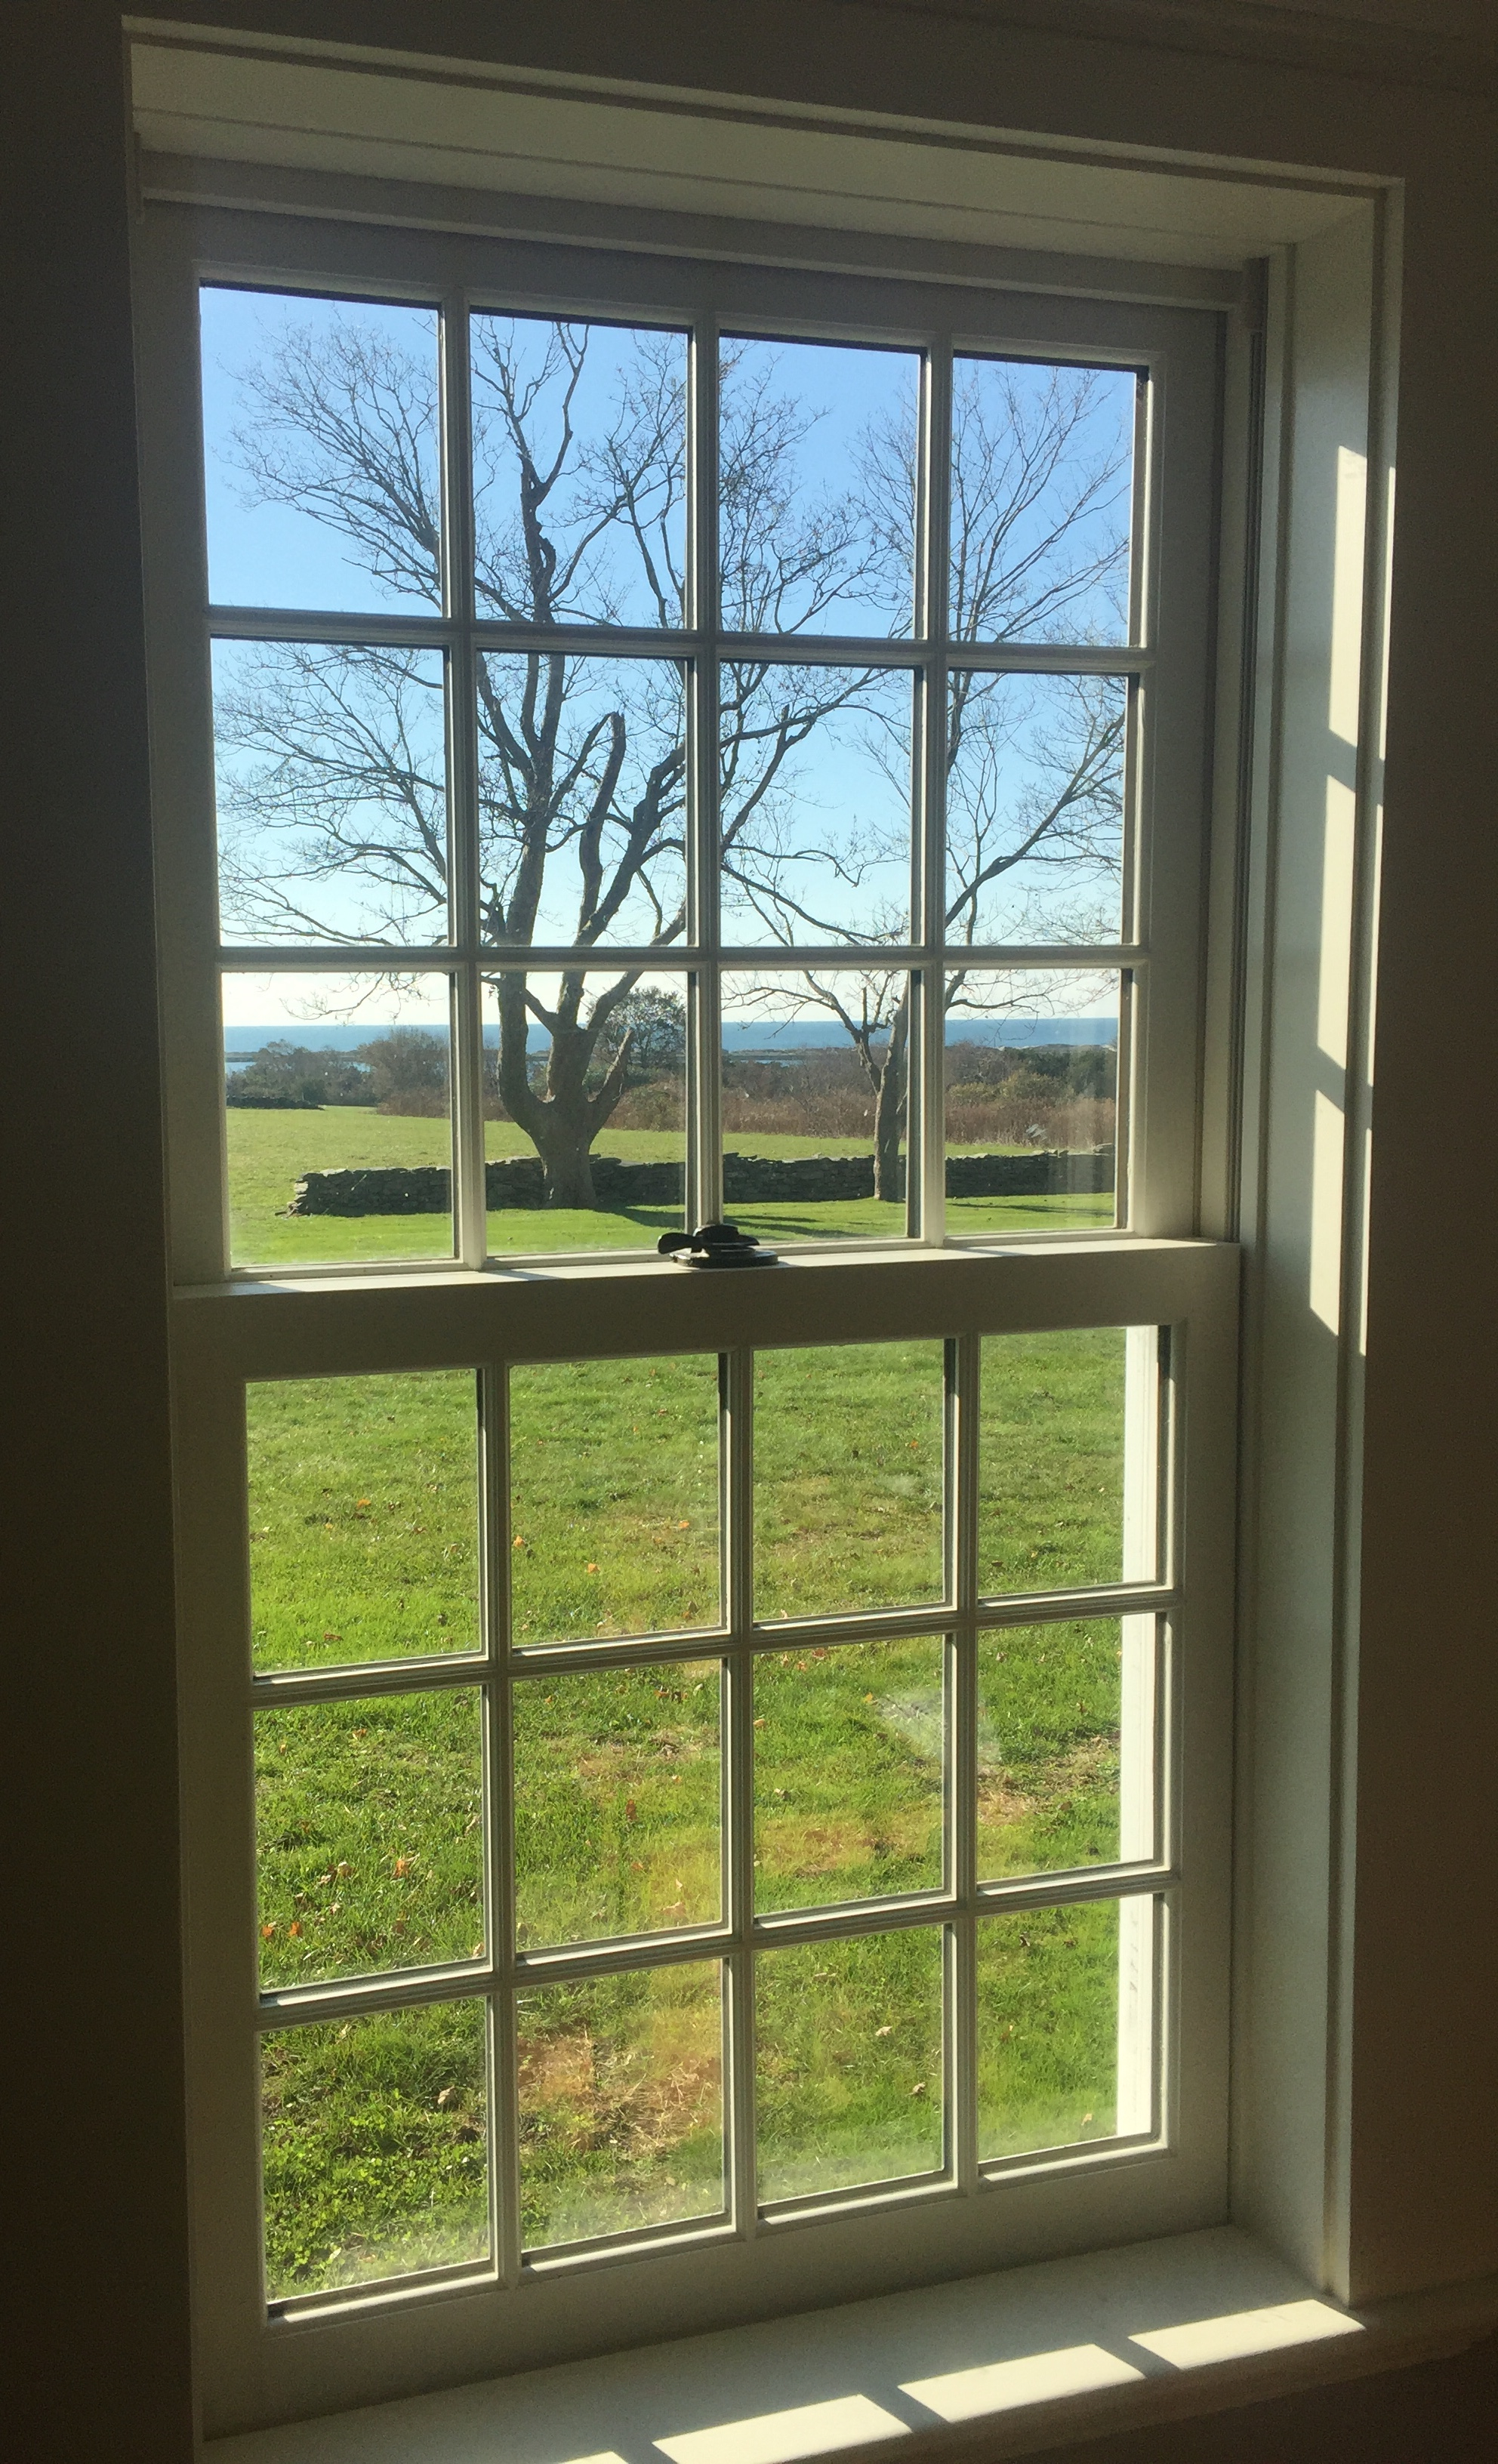 11-15-17 Farmhouse Dining Room Window.jpeg